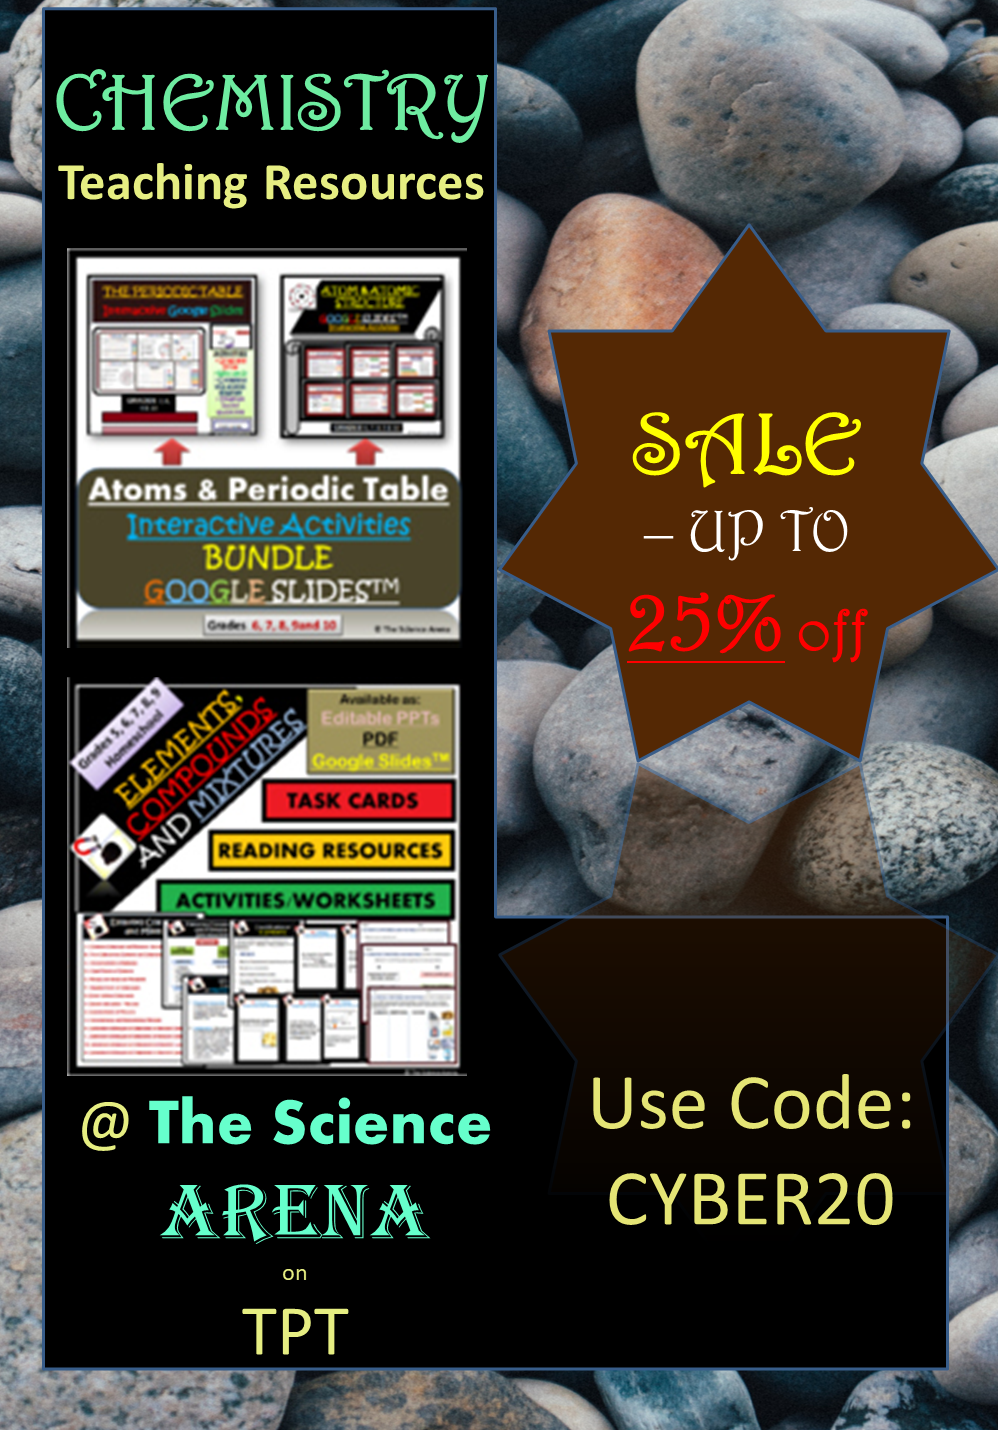 Chemistry Teaching Resources By The Science Arena On Sale Up To 25 Off Only For 2 Days Teaching Chemistry Science Activities For Kids Science Powerpoint [ 1440 x 998 Pixel ]